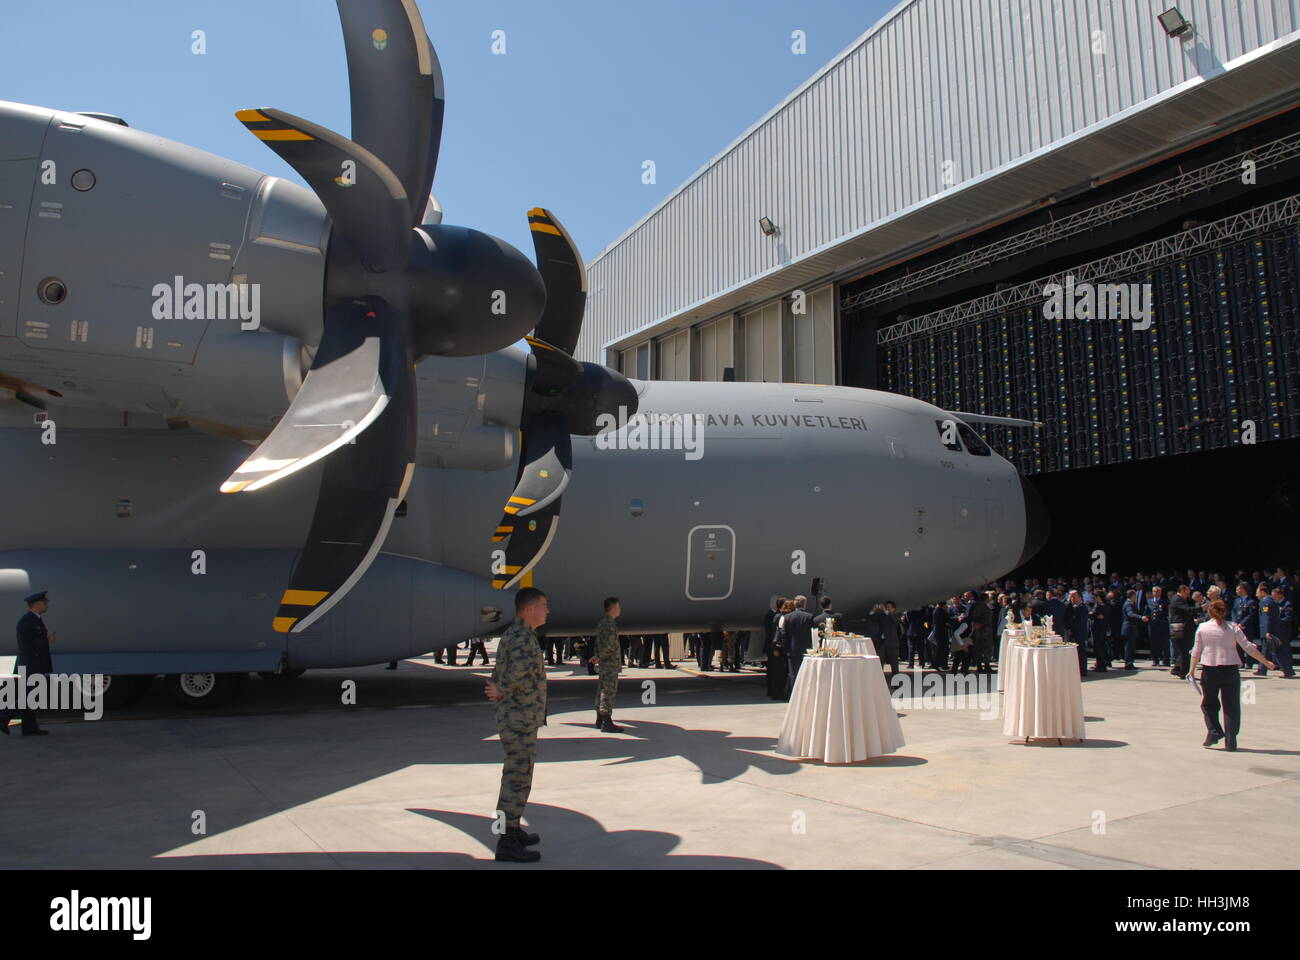 Turkish Air Forces' Airbus A400M Atlas military transport aircraft in Erkilet Air Force Base during the inaugural - Stock Image